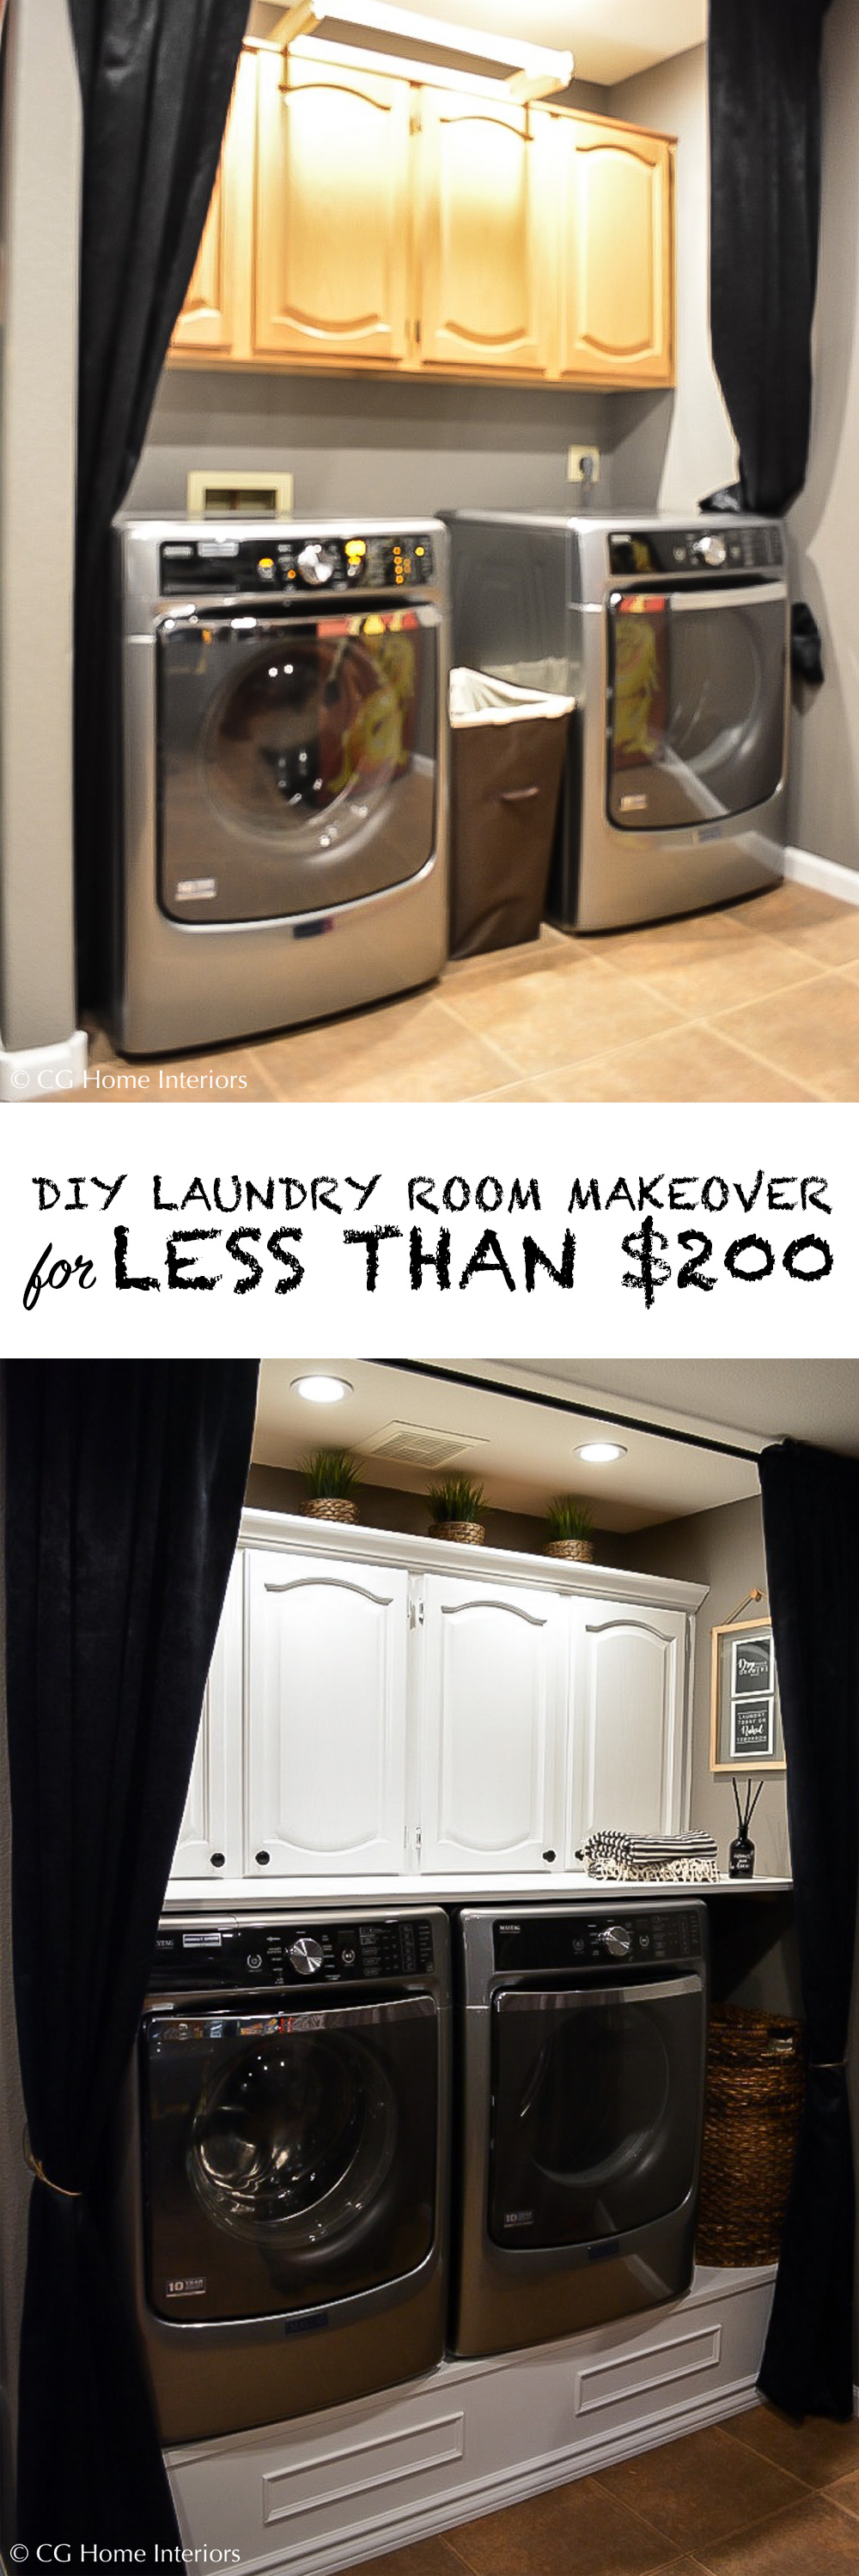 Pinterest Image Small Laundry Room Makeover on a Budget